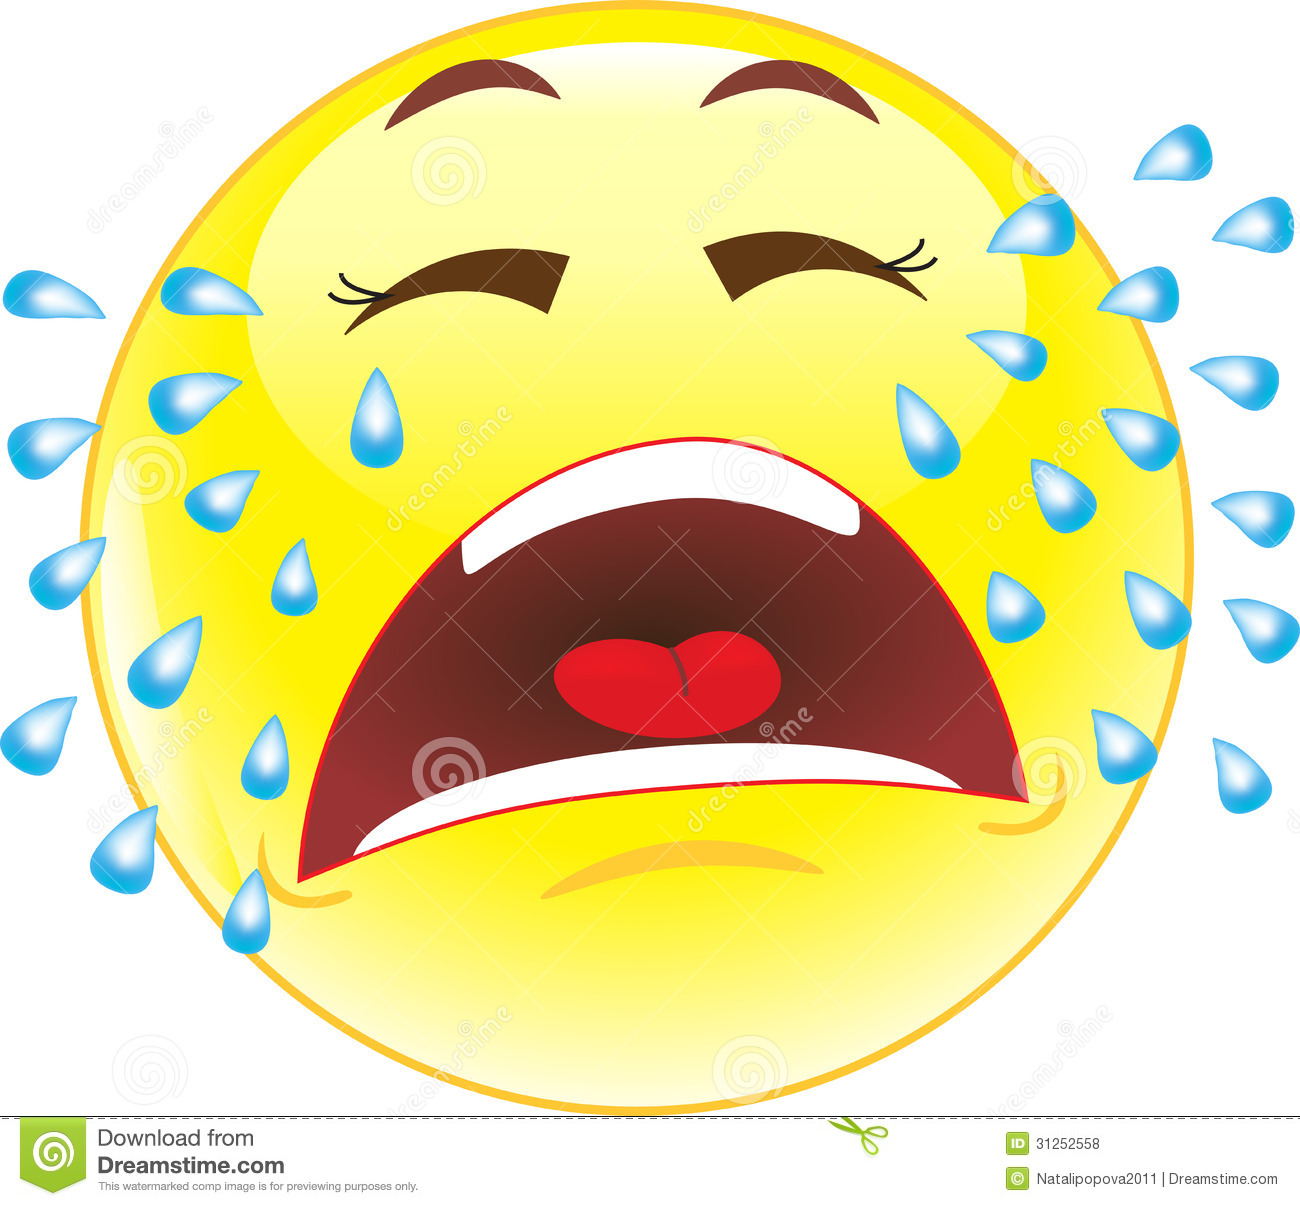 Crying Smiley-face Clipart - Clipart Suggest